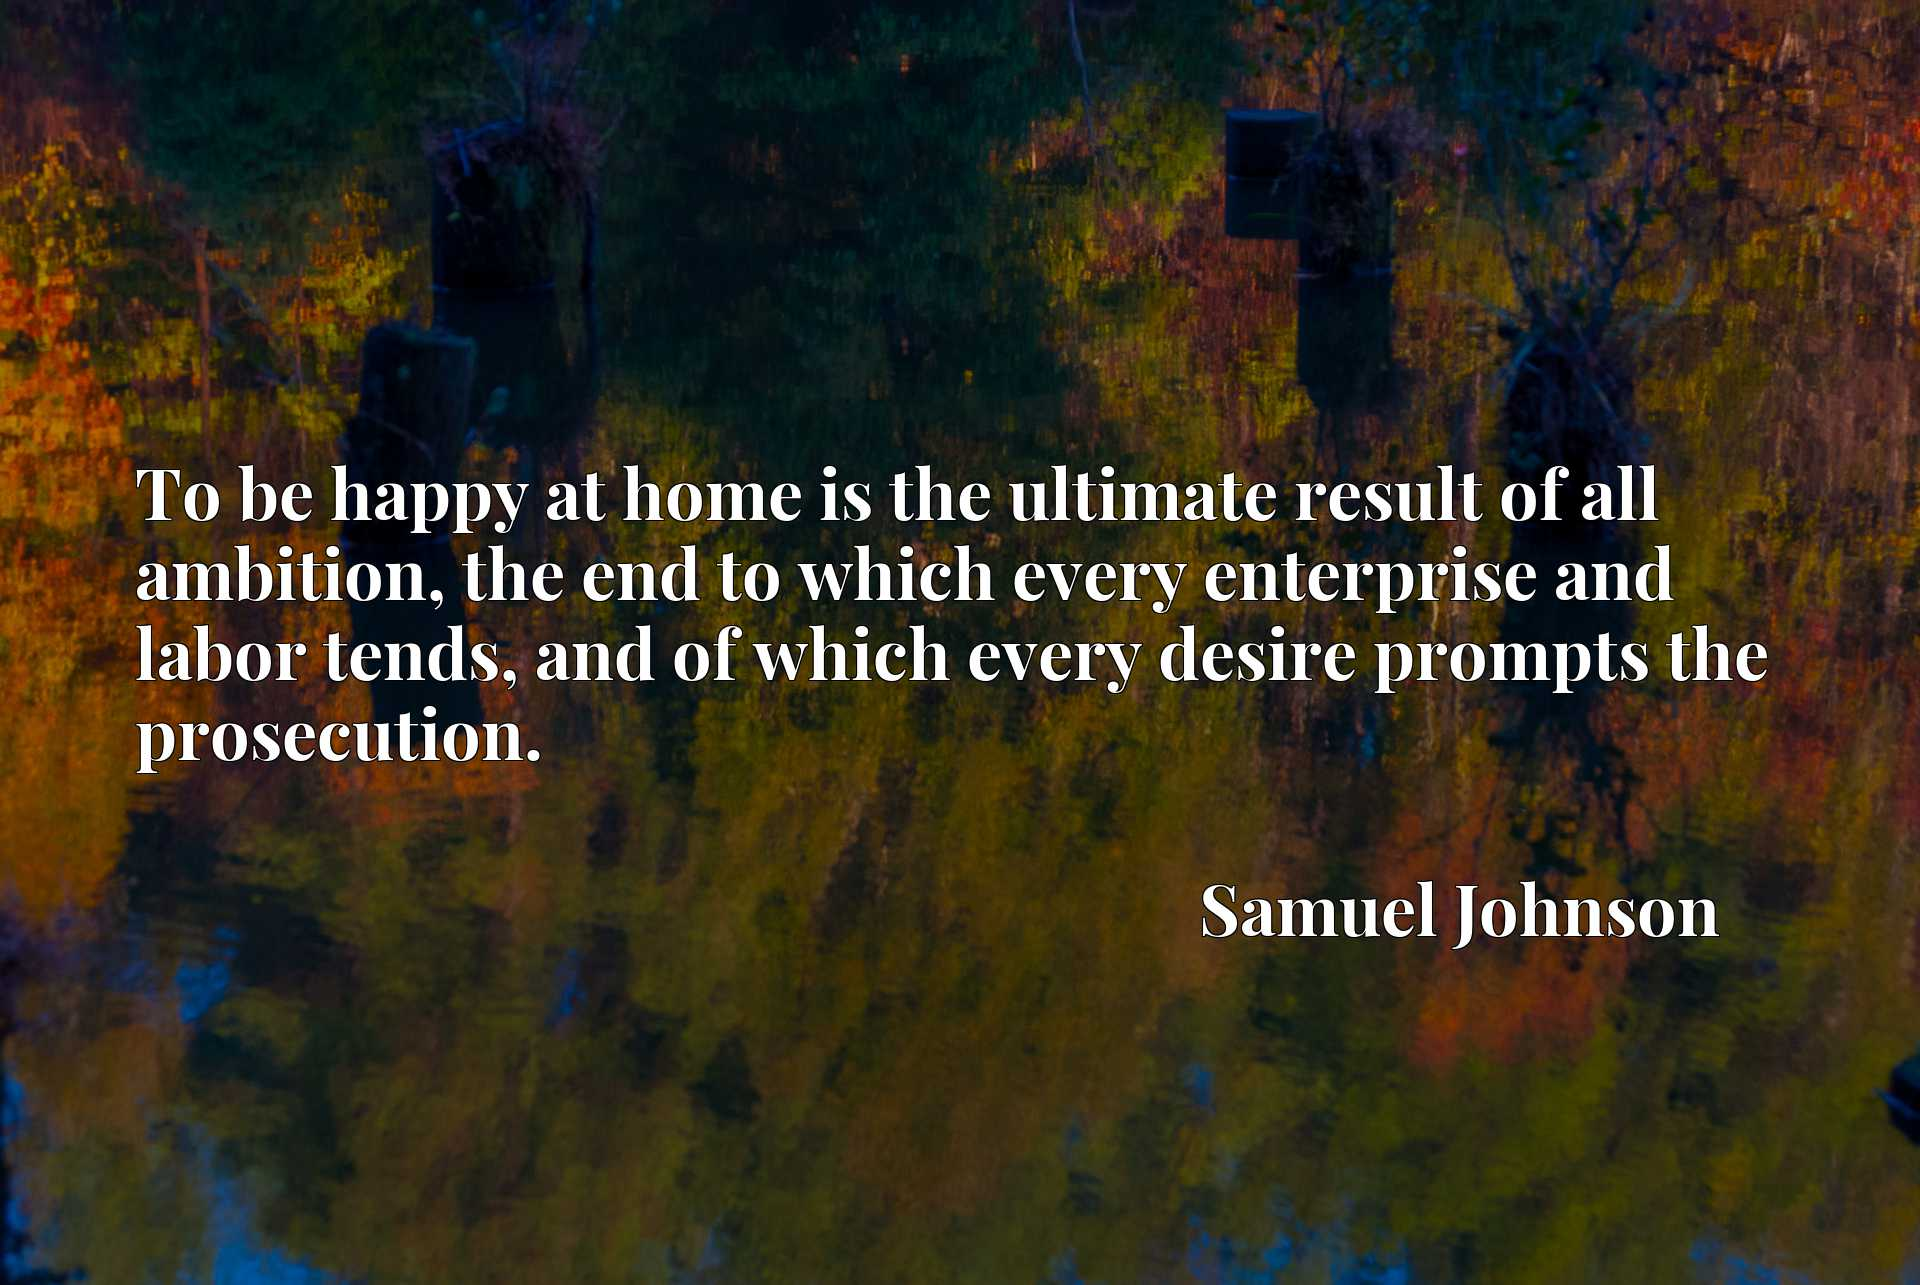 To be happy at home is the ultimate result of all ambition, the end to which every enterprise and labor tends, and of which every desire prompts the prosecution.